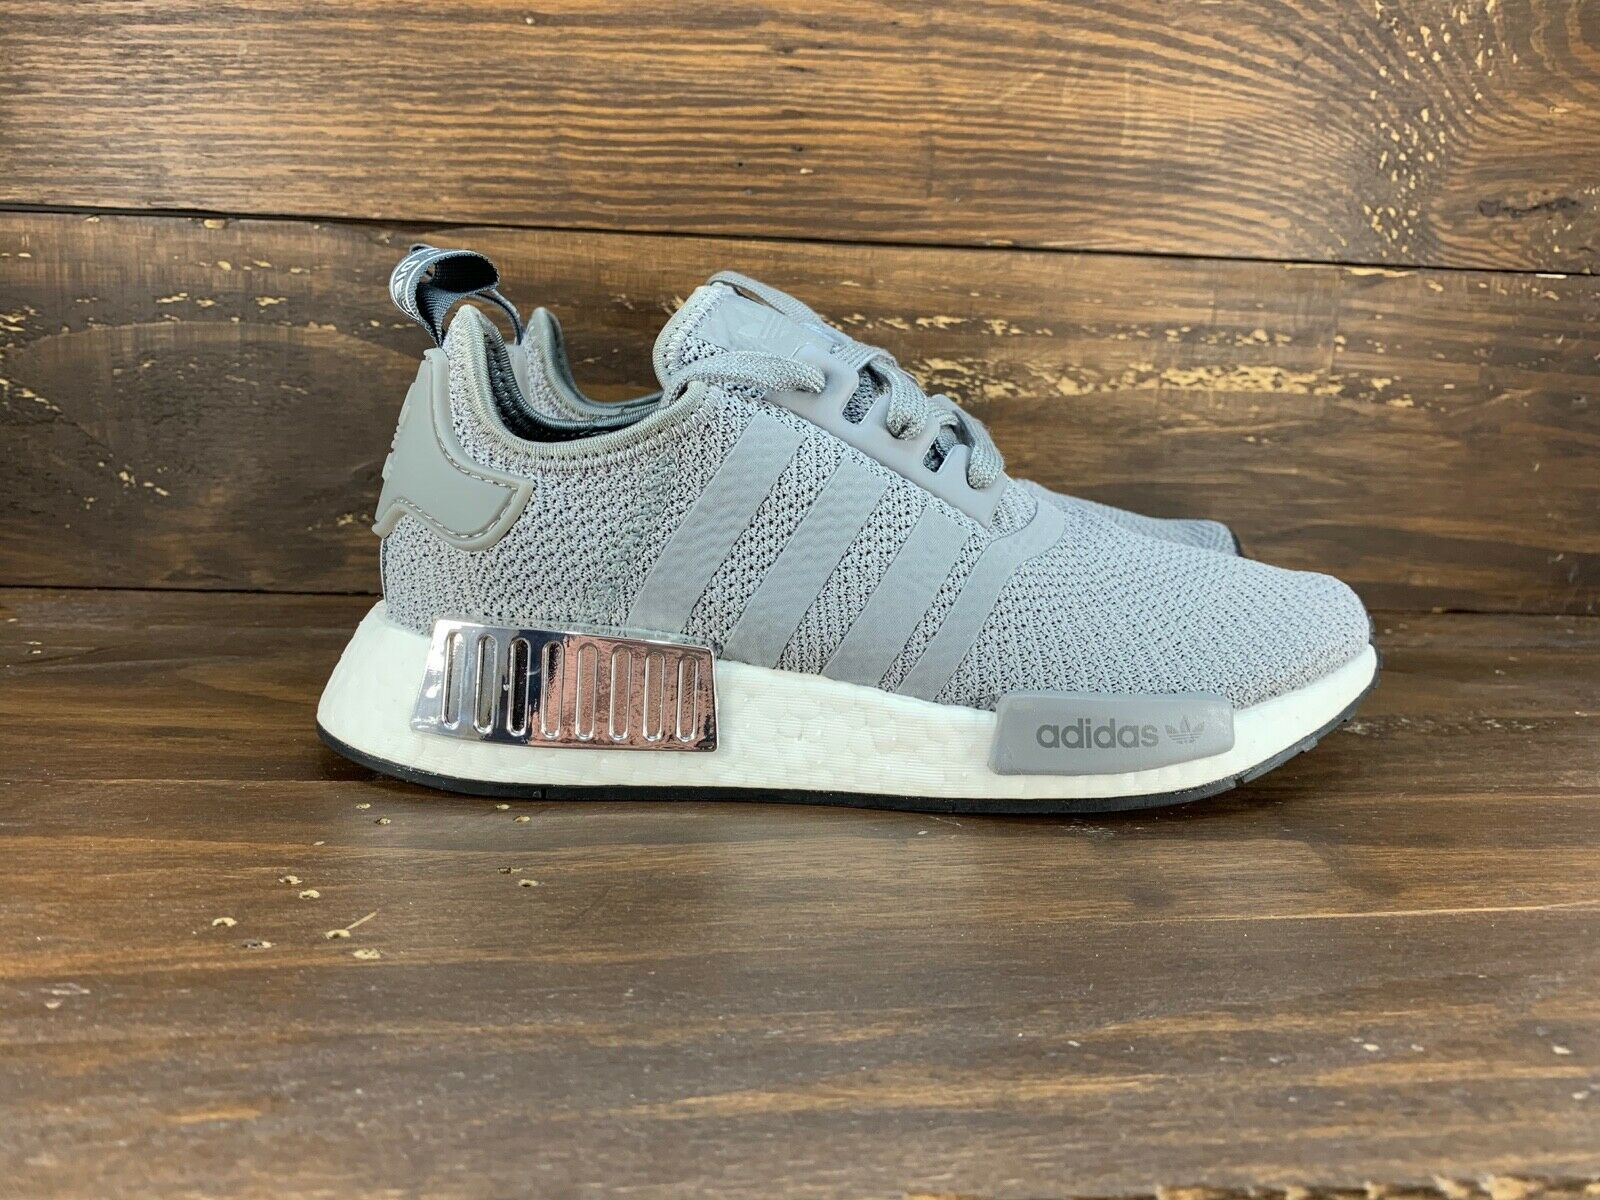 Adidas Nmd R1 Womens Shoes For Sale Online Ebay